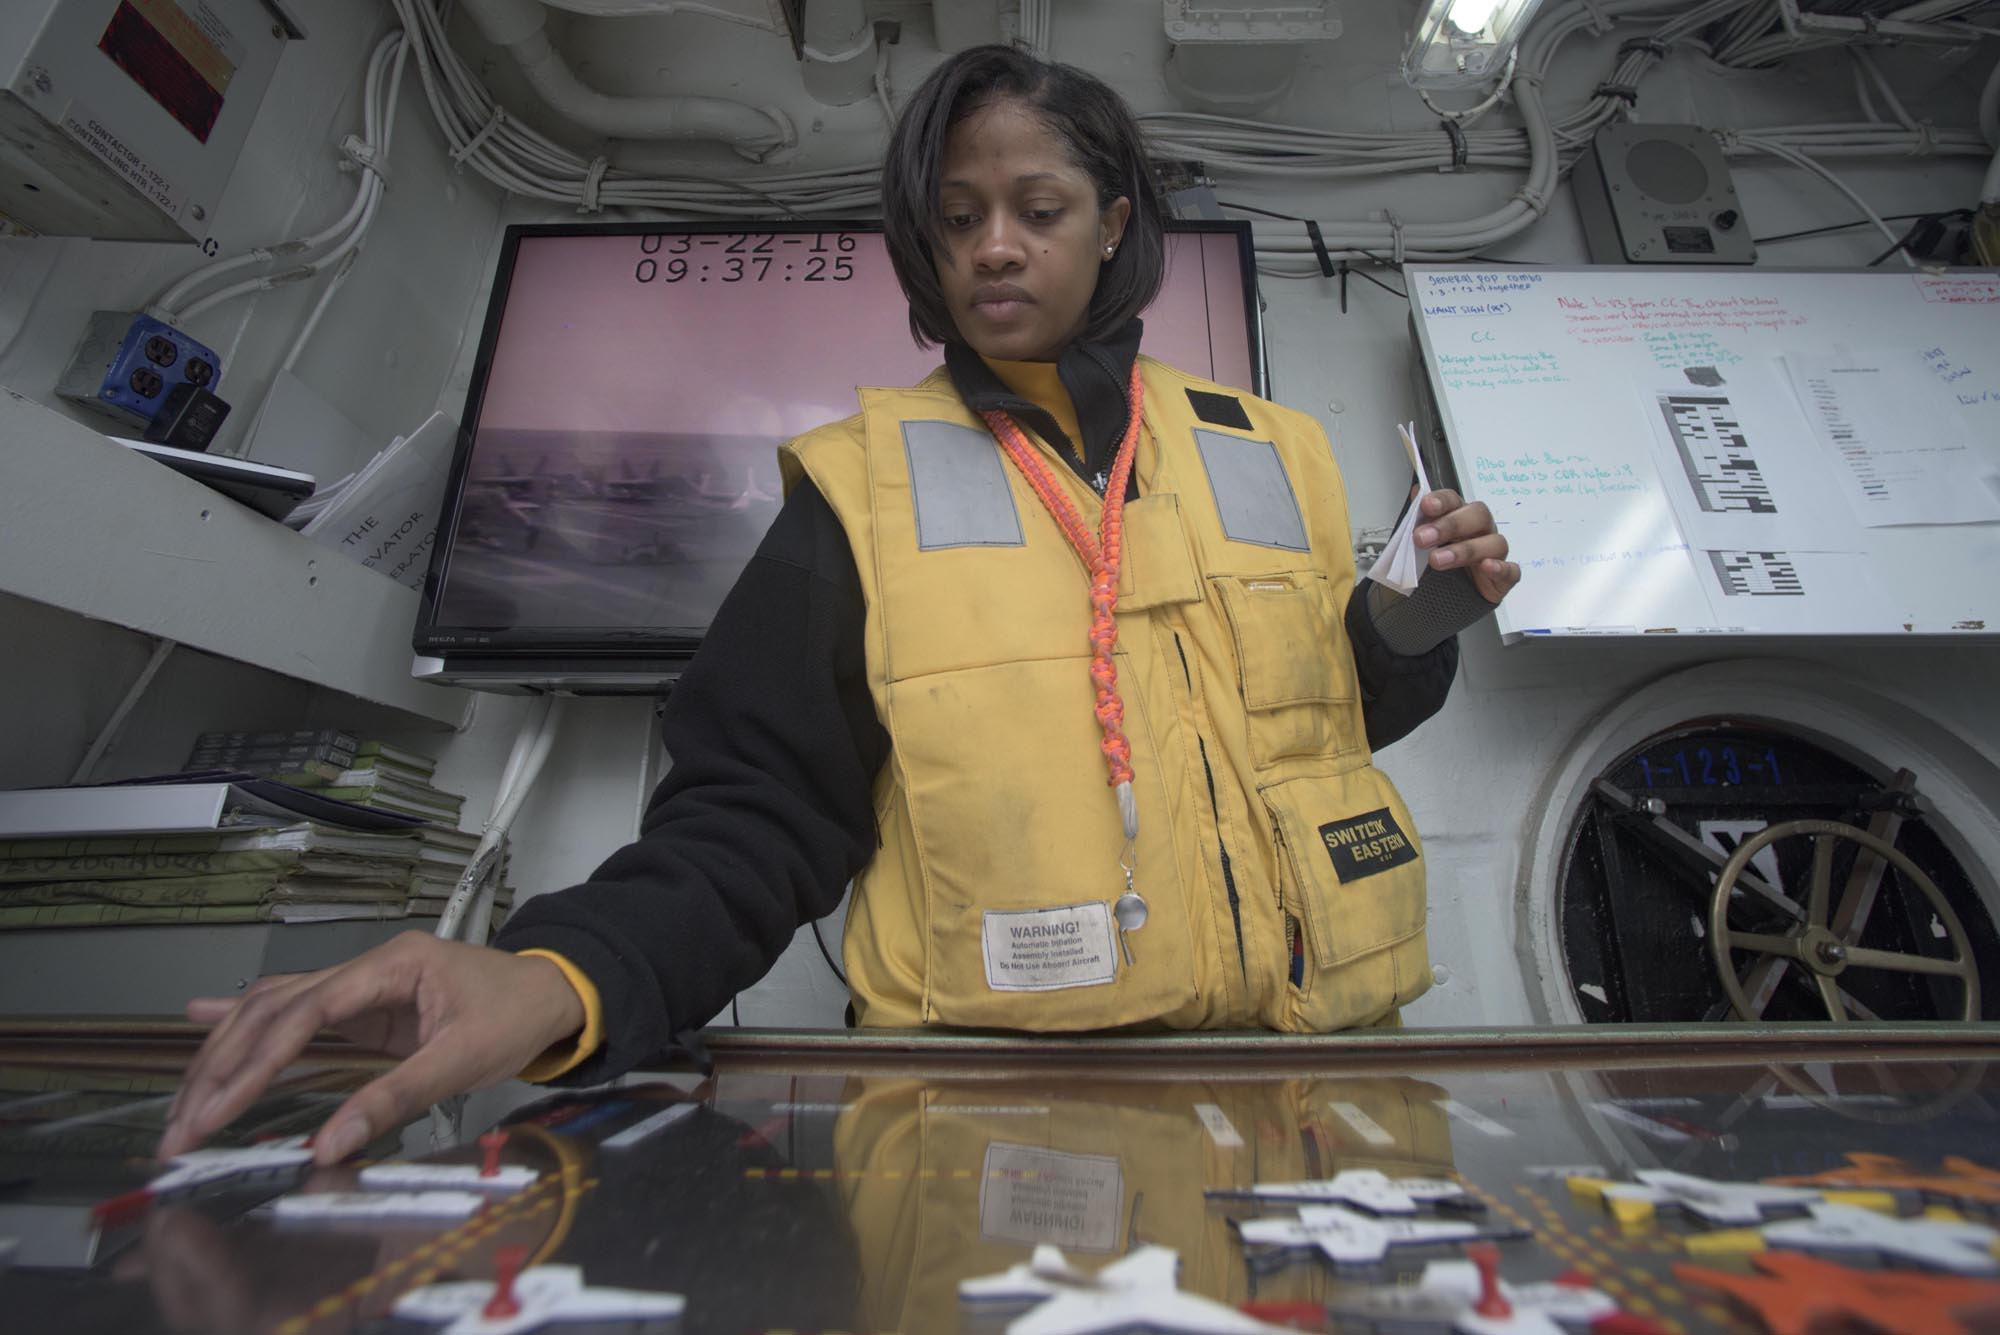 160322-N-KK394-052ATLANTIC OCEAN (March 22, 2016) - Aviation Boatswain's Mate (Handling) 2nd Class Kira Edgehill mans the hangar deck control Ouija board aboard the aircraft carrier USS Dwight D. Eisenhower (CVN 69), the flagship of the Eisenhower Carrier Strike Group. Ike is underway conducting a Composite Training Unit Exercise (COMPTUEX) with the Eisenhower Carrier Strike Group in preparation for a future deployment. (U.S. Navy photo by Mass Communication Specialist 3rd Class Anderson W. Branch/Released)d)